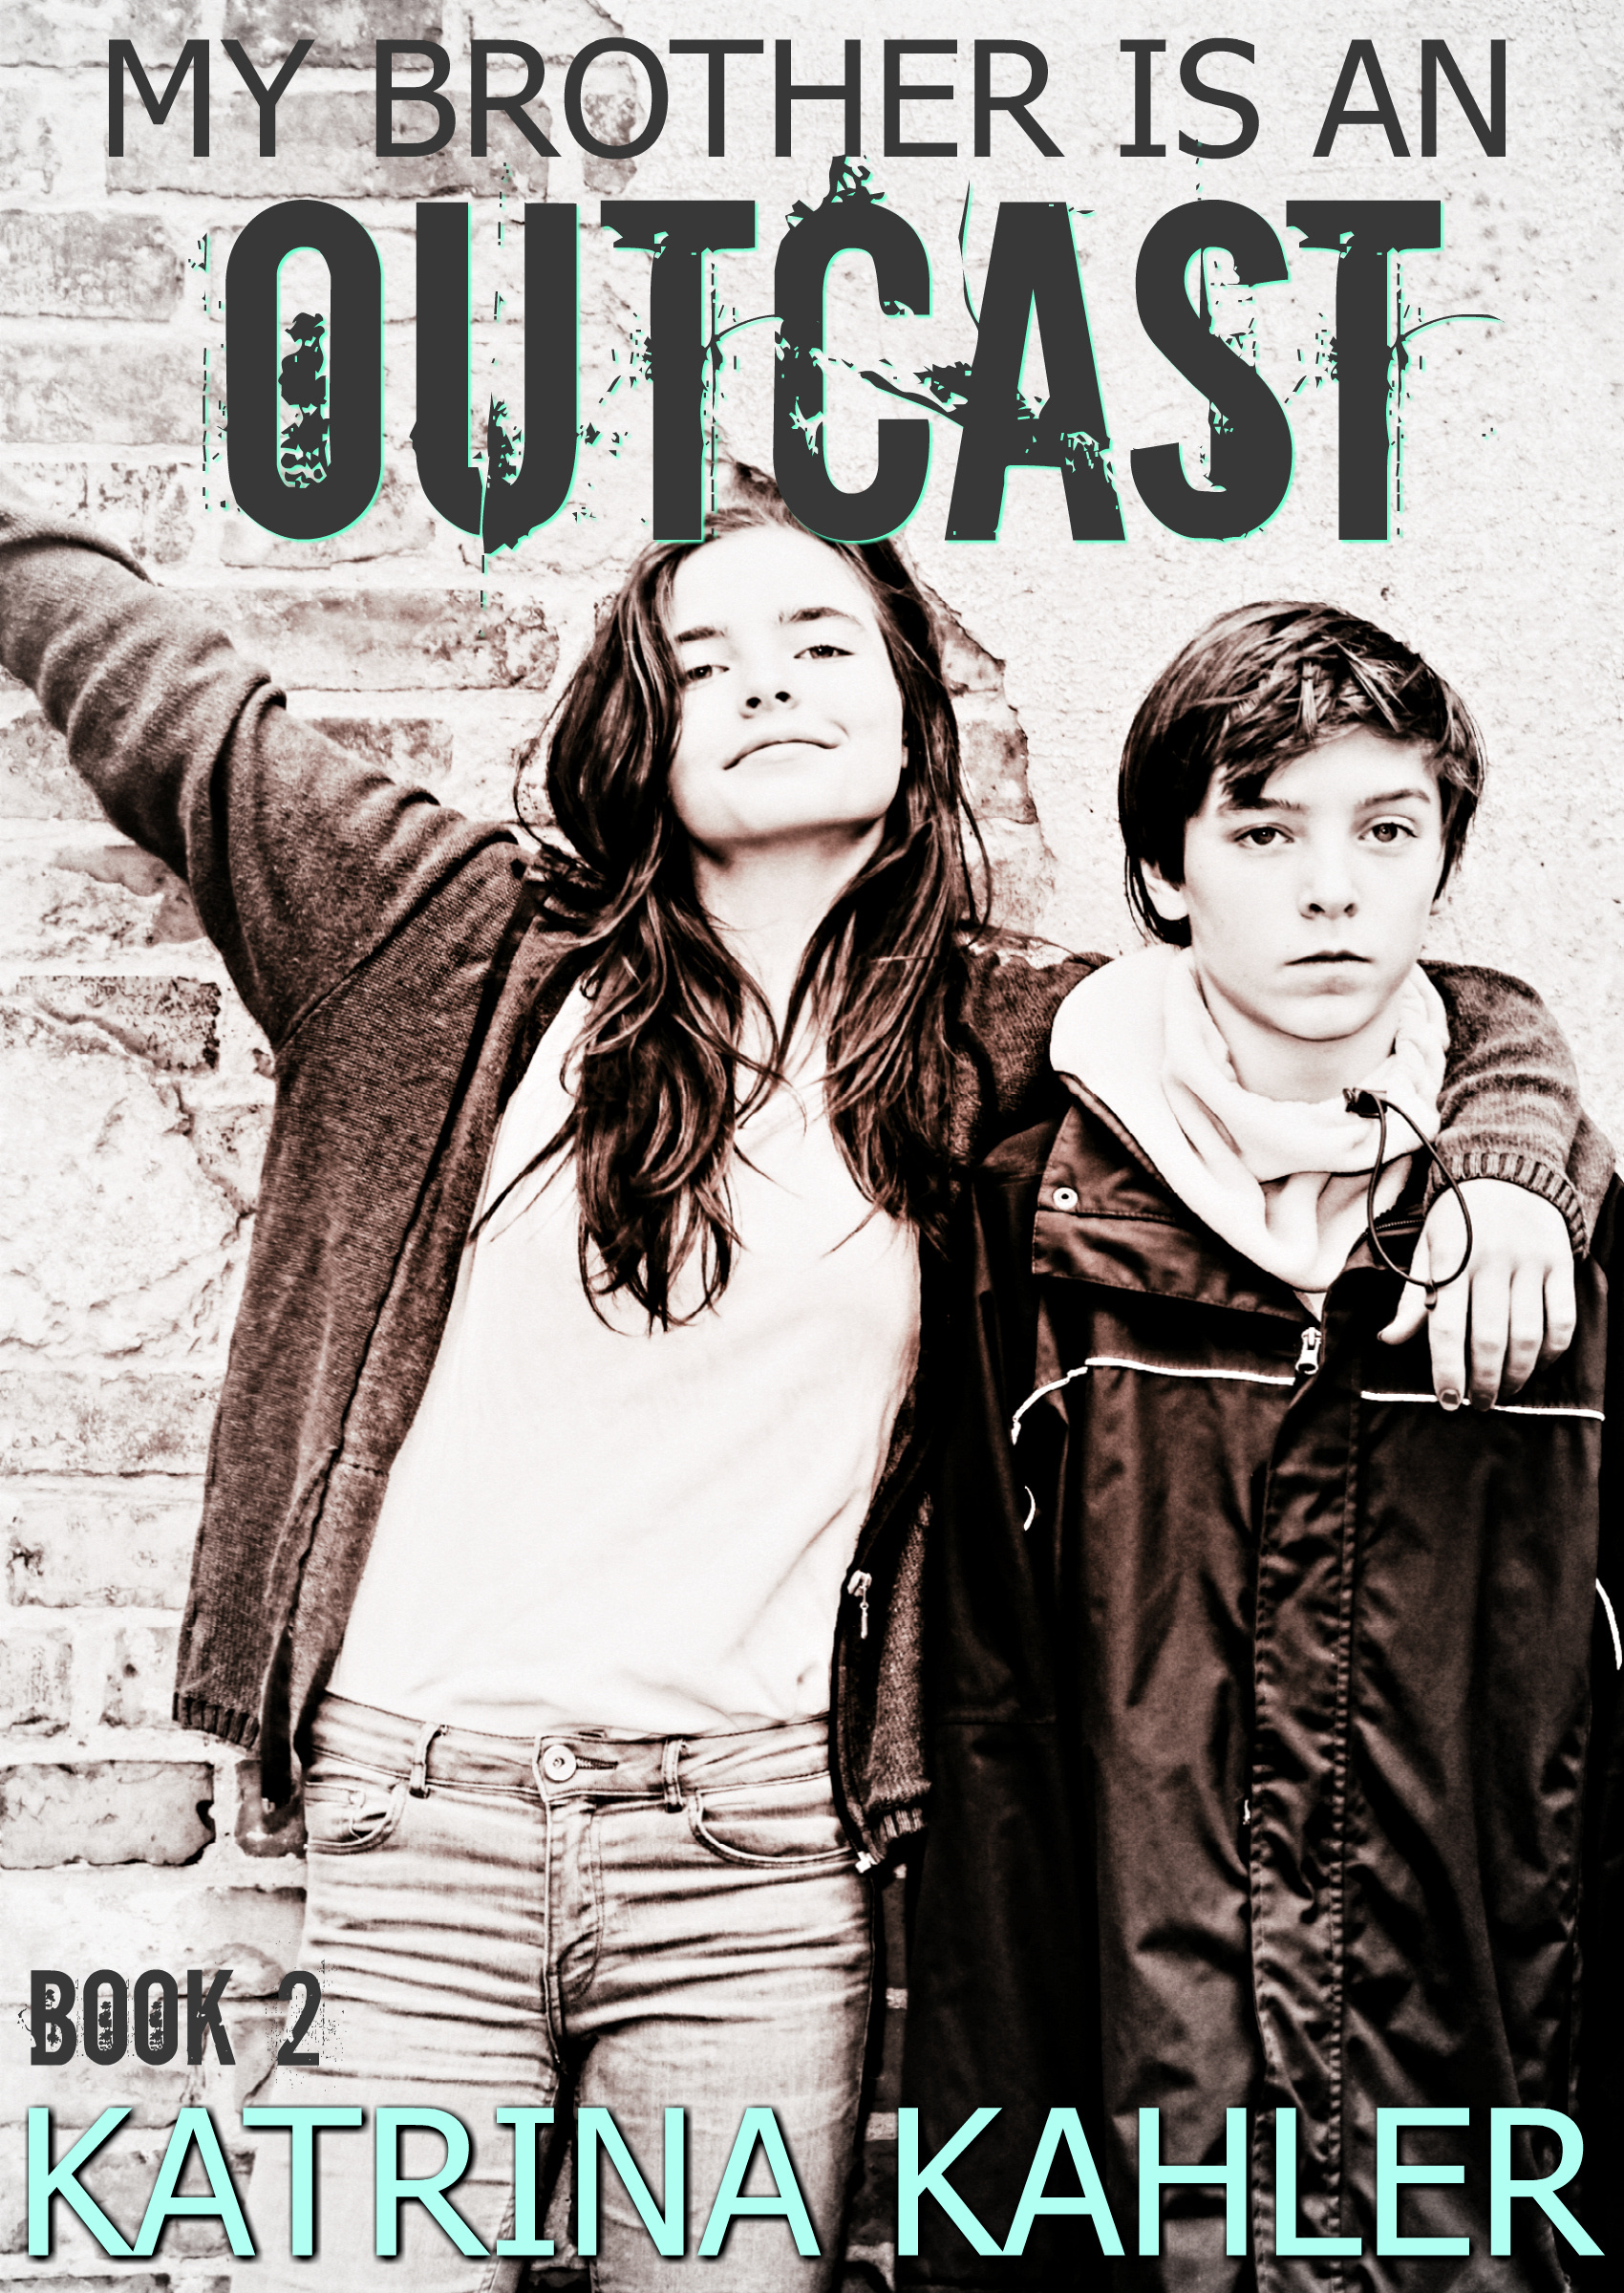 My brother is an outcast - book 2 - escape: book for kids 12+